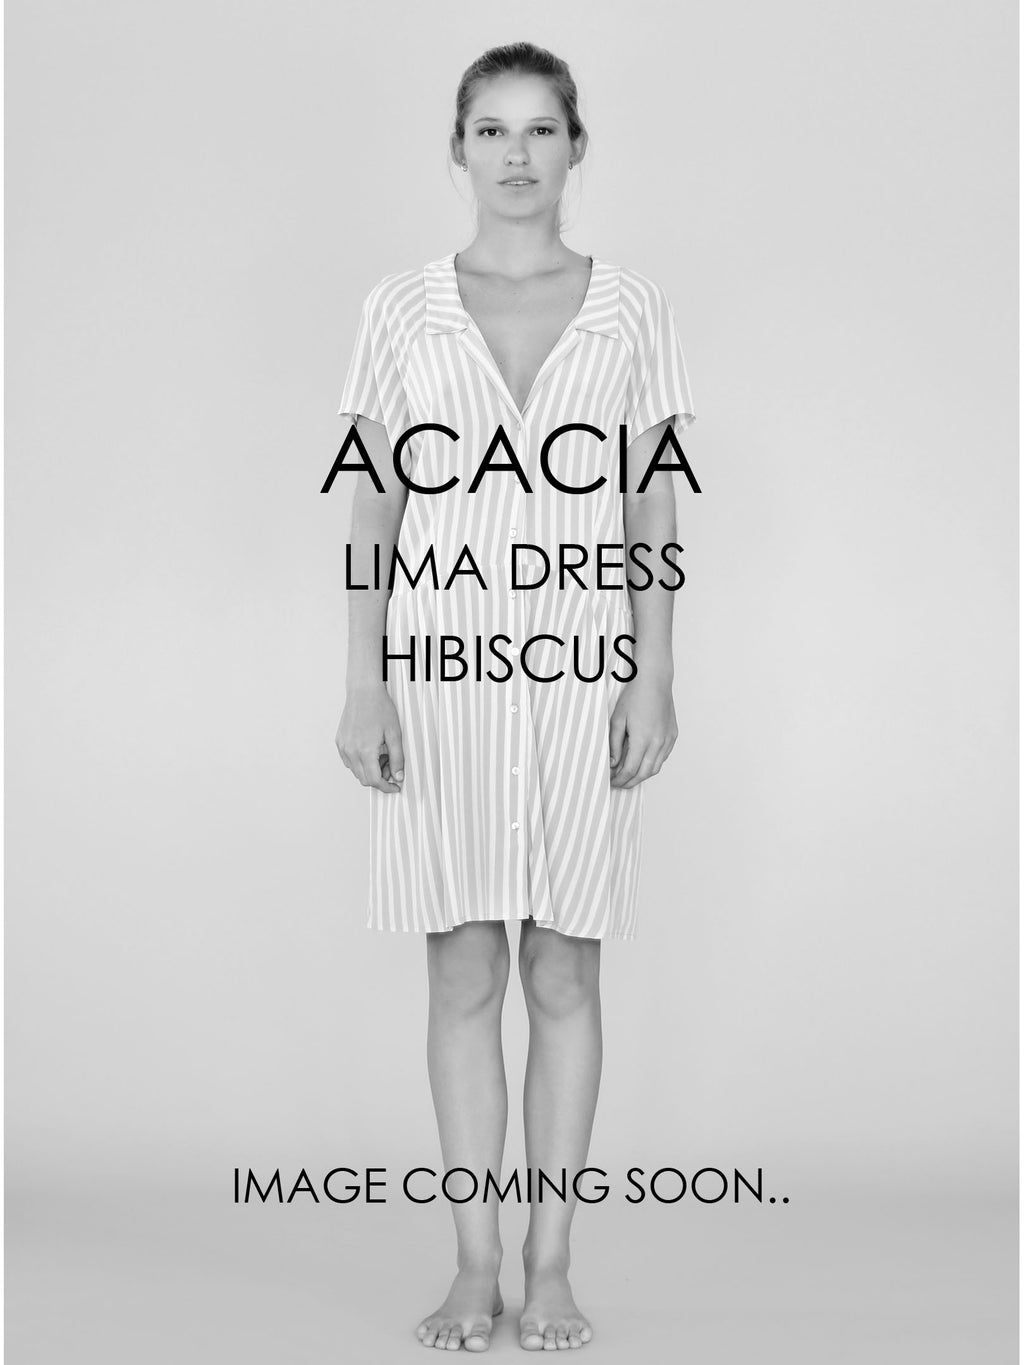 ACACIA Lima Dress | Hibiscus